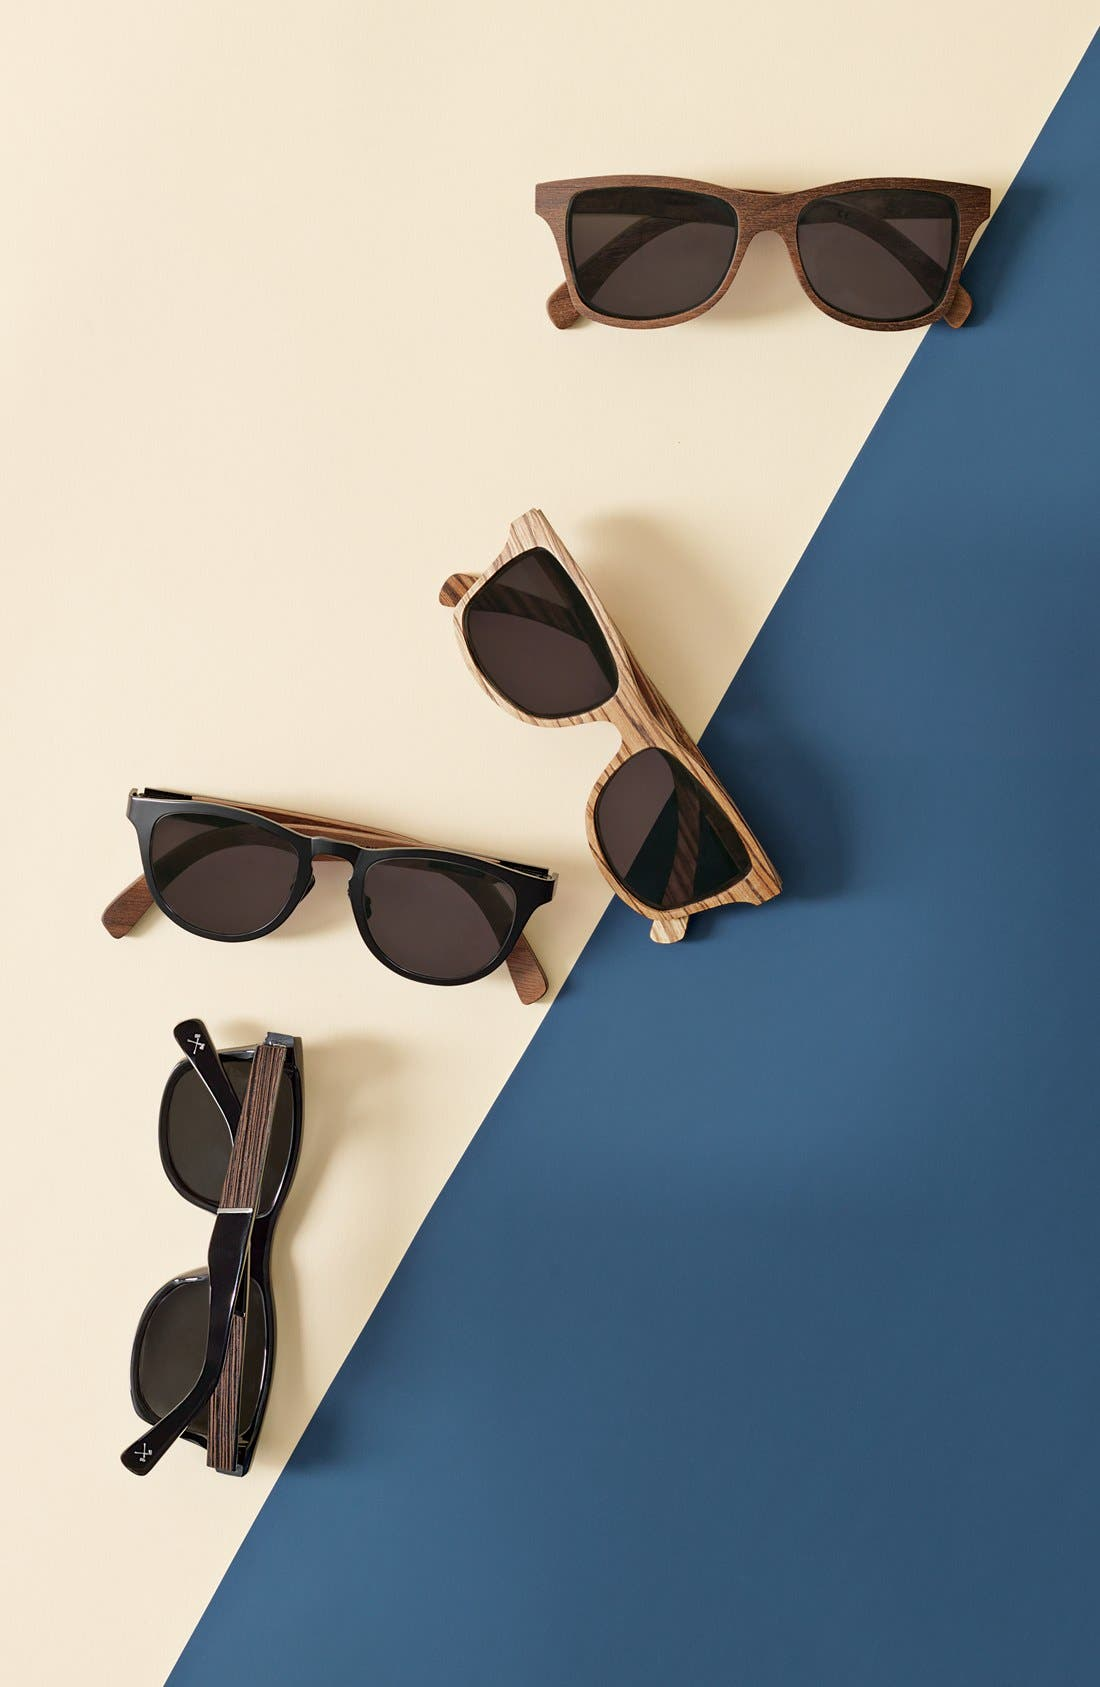 'Canby' 53mm Wood Sunglasses,                             Alternate thumbnail 5, color,